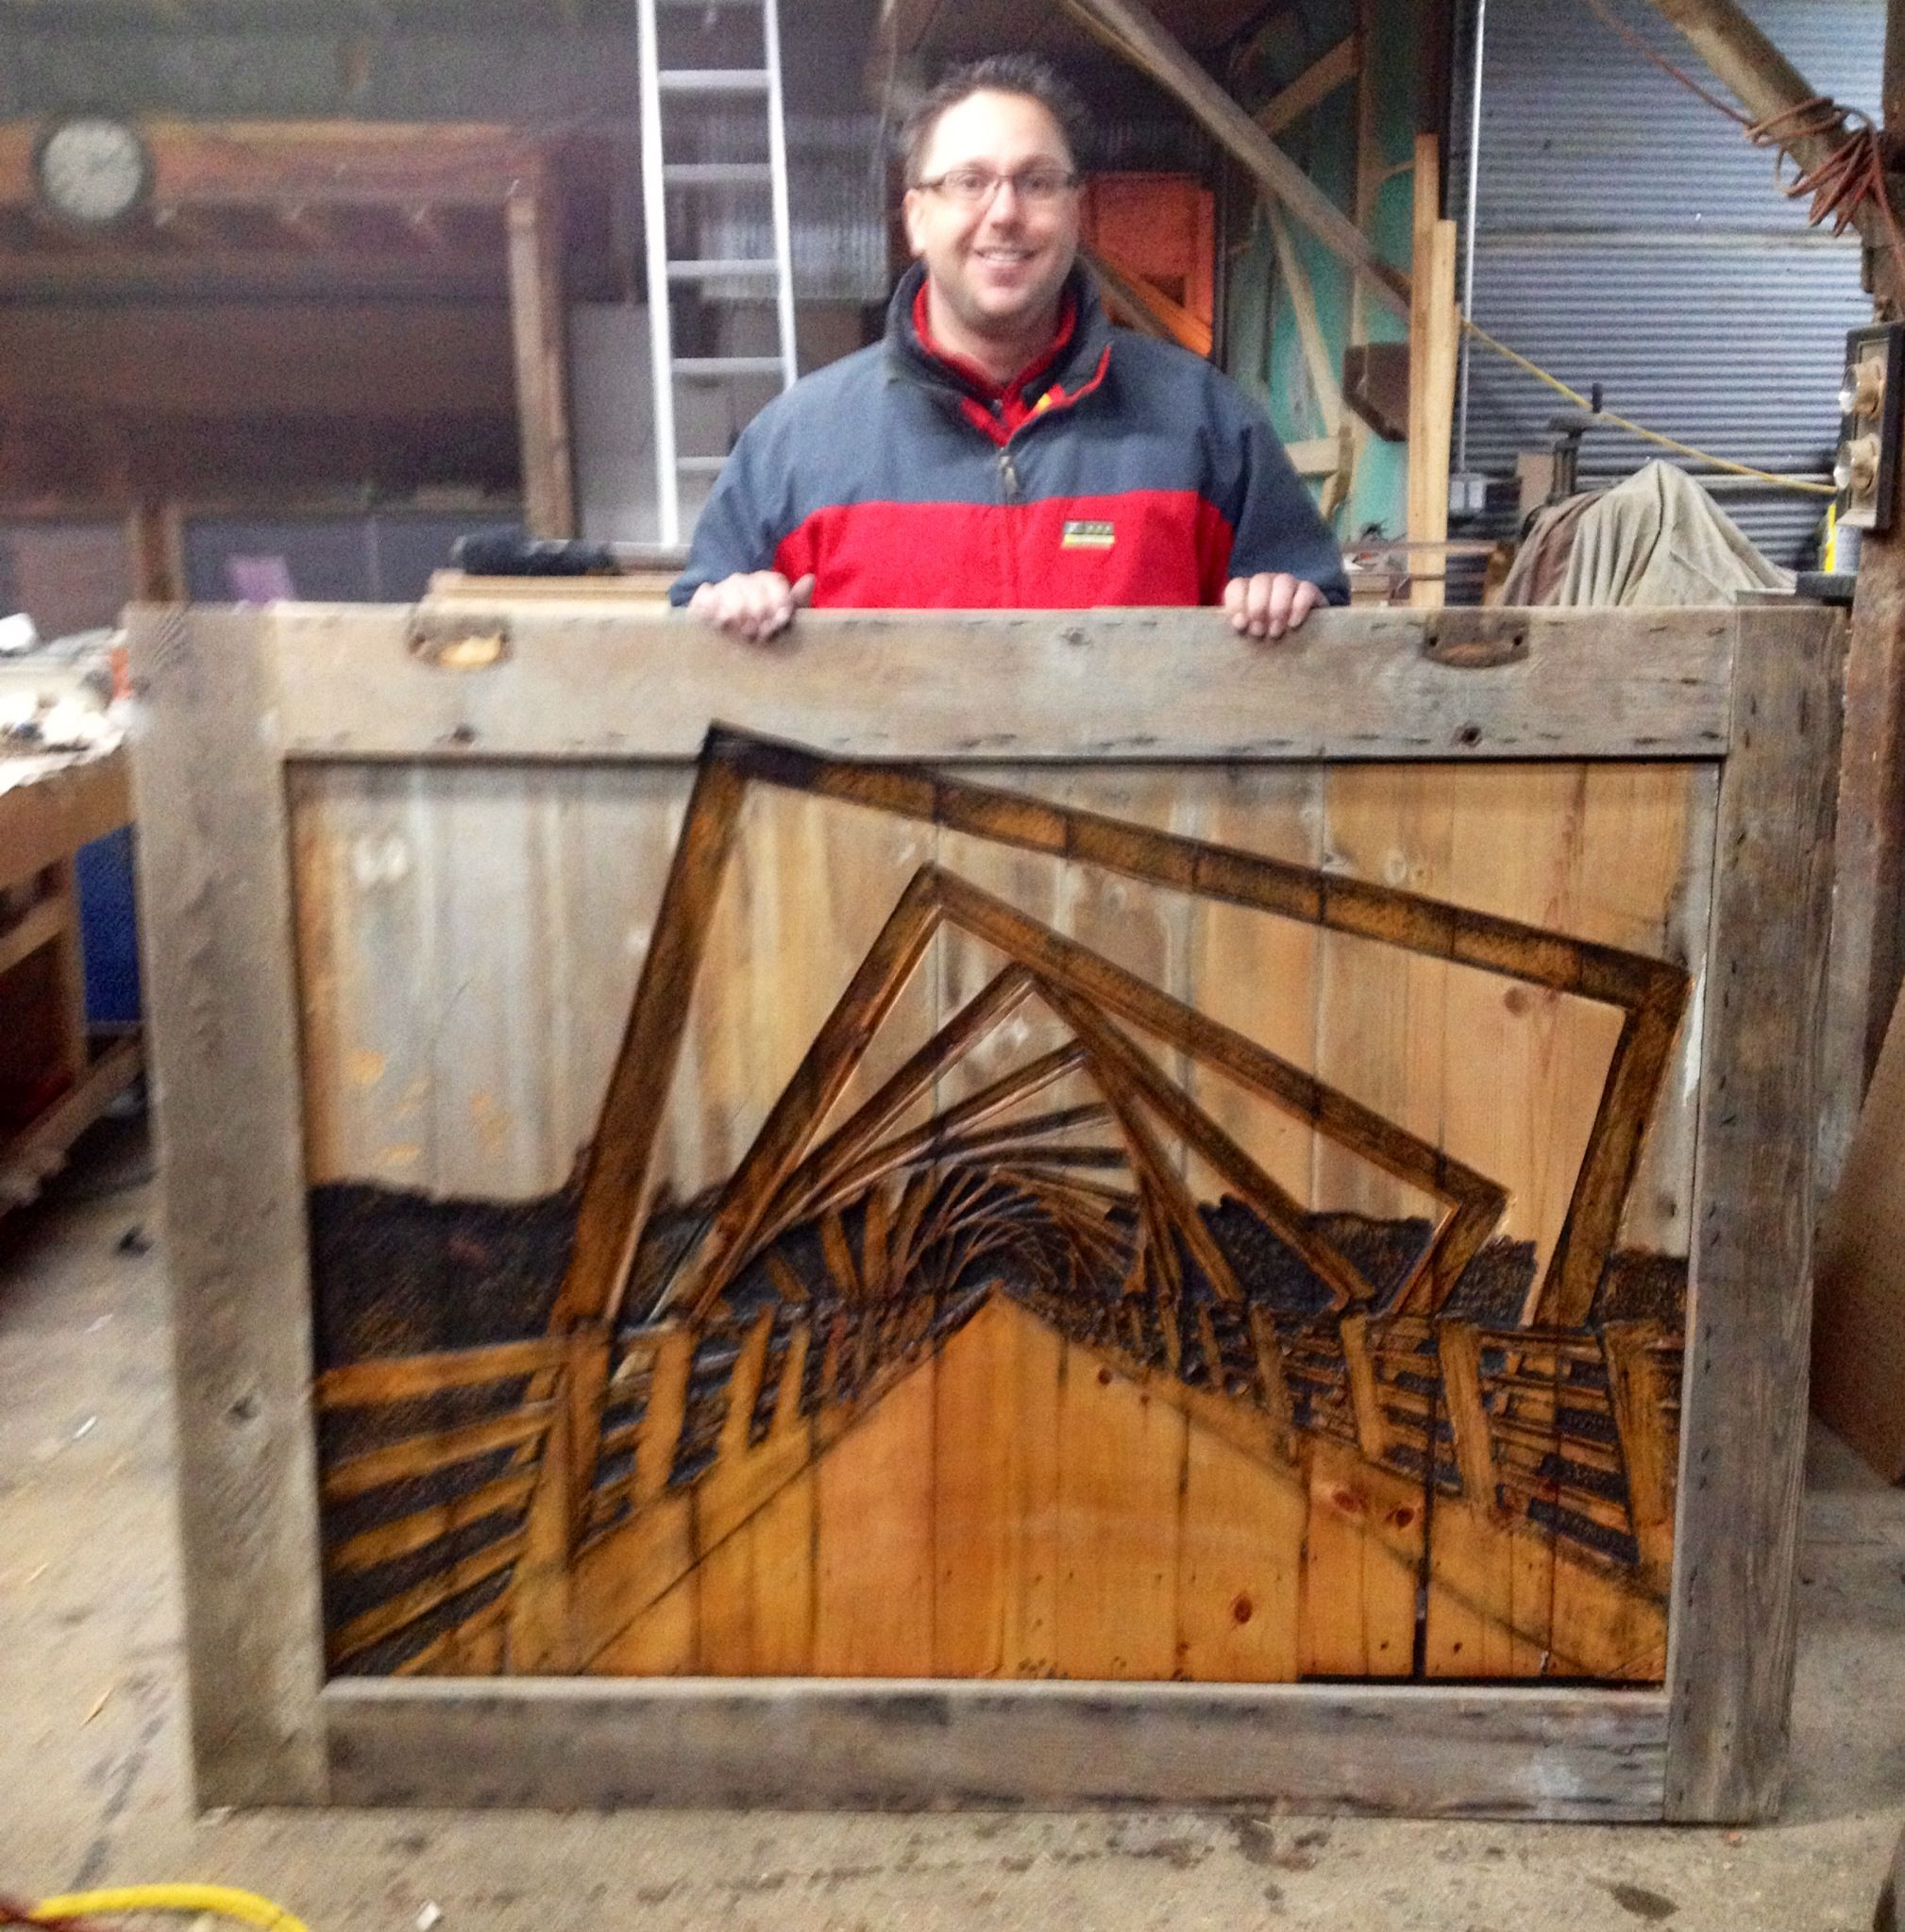 Barn door we carved with the 1 mile bike bridge located in Woodward, IA. The High Trestle Trail